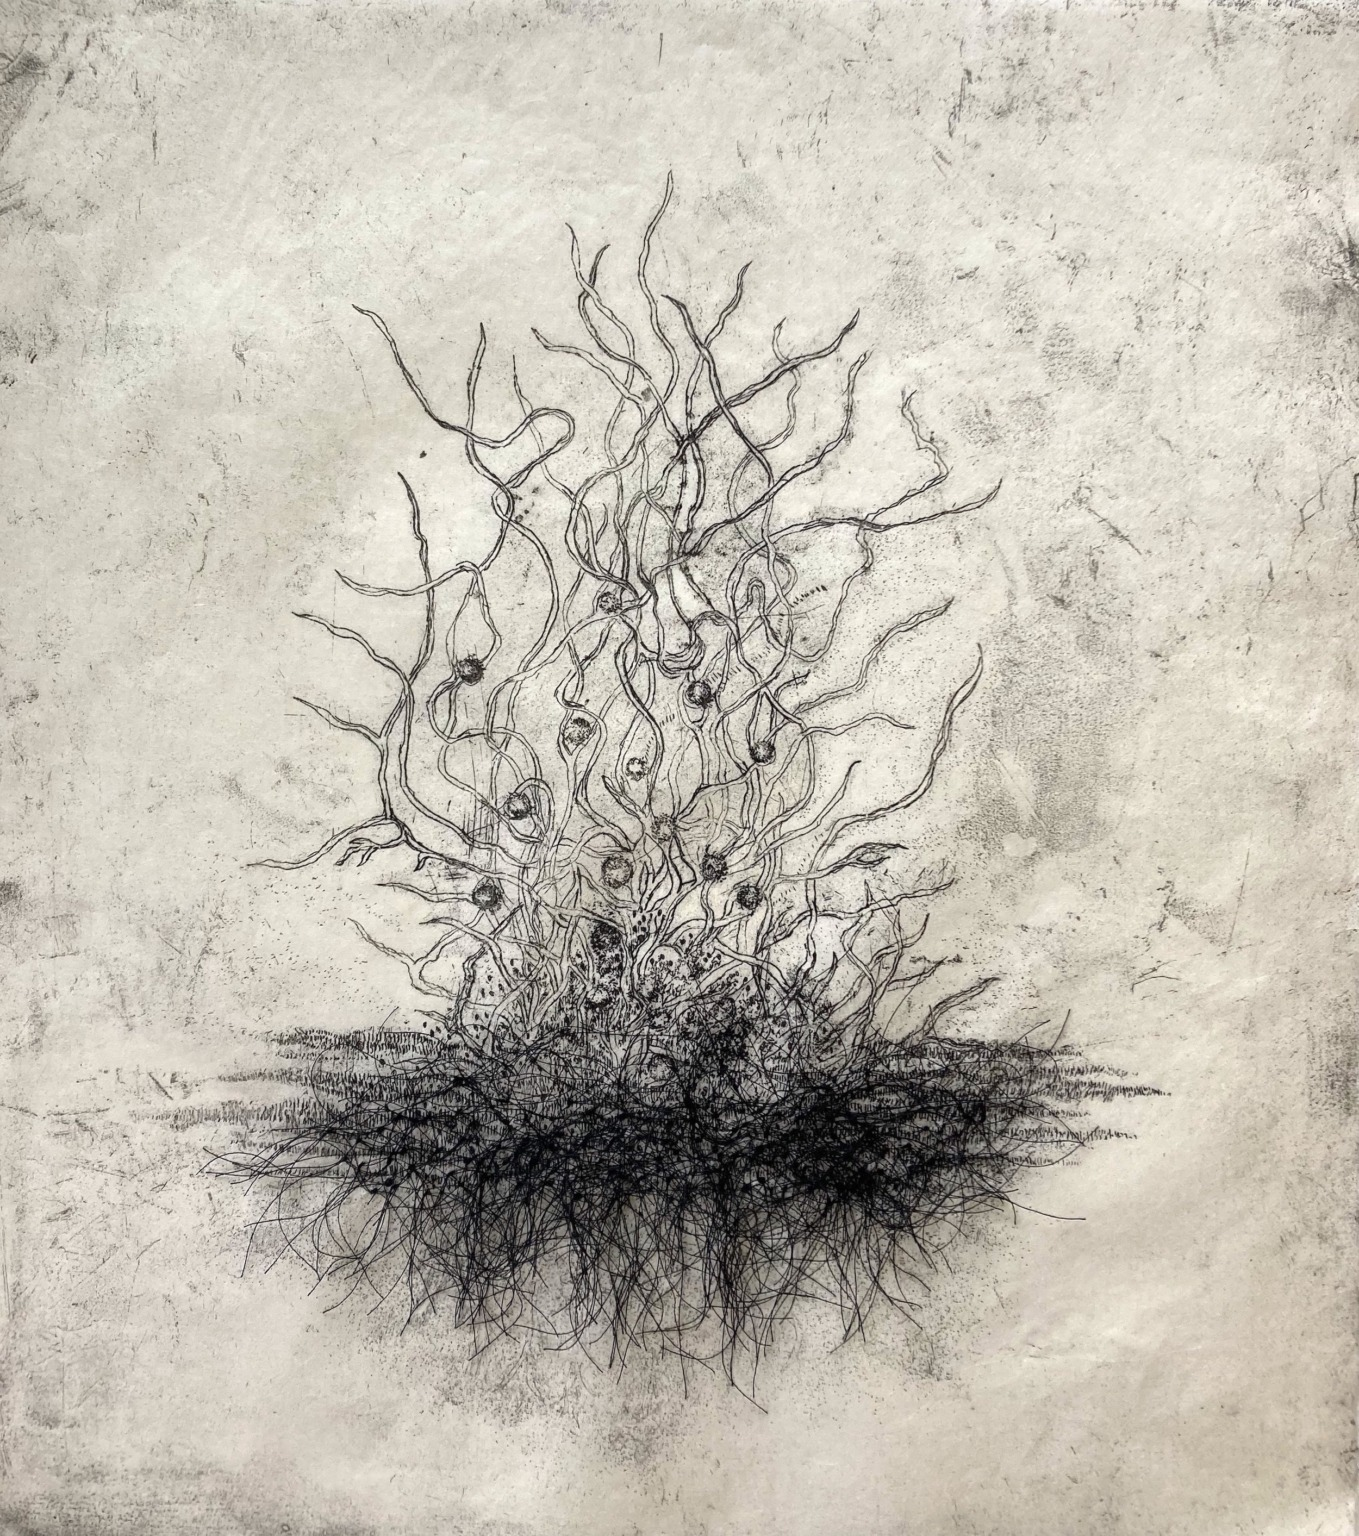 Etching on paper of a plant